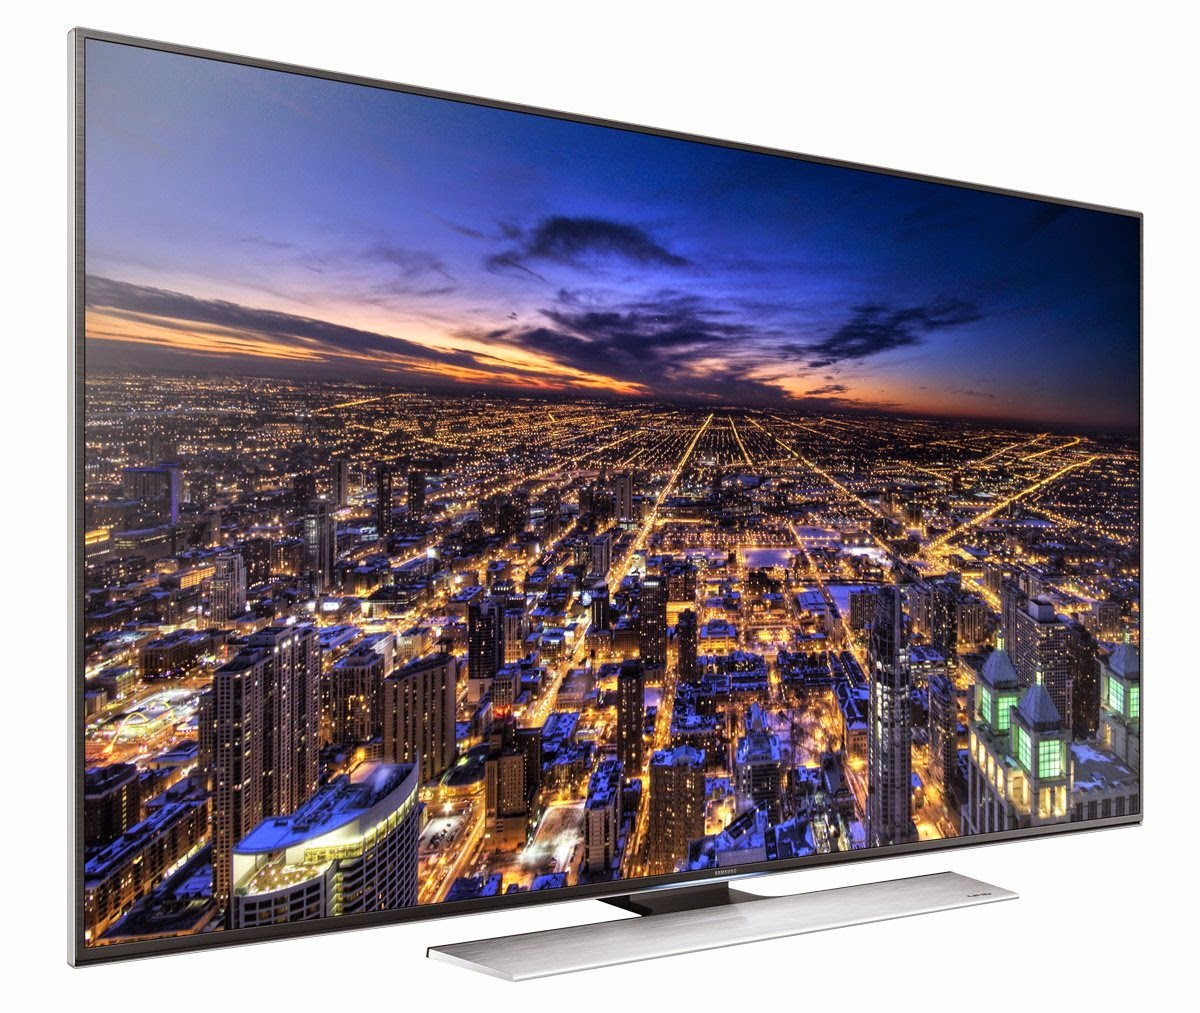 Samsung UN50HU8550 50-Inch for left view